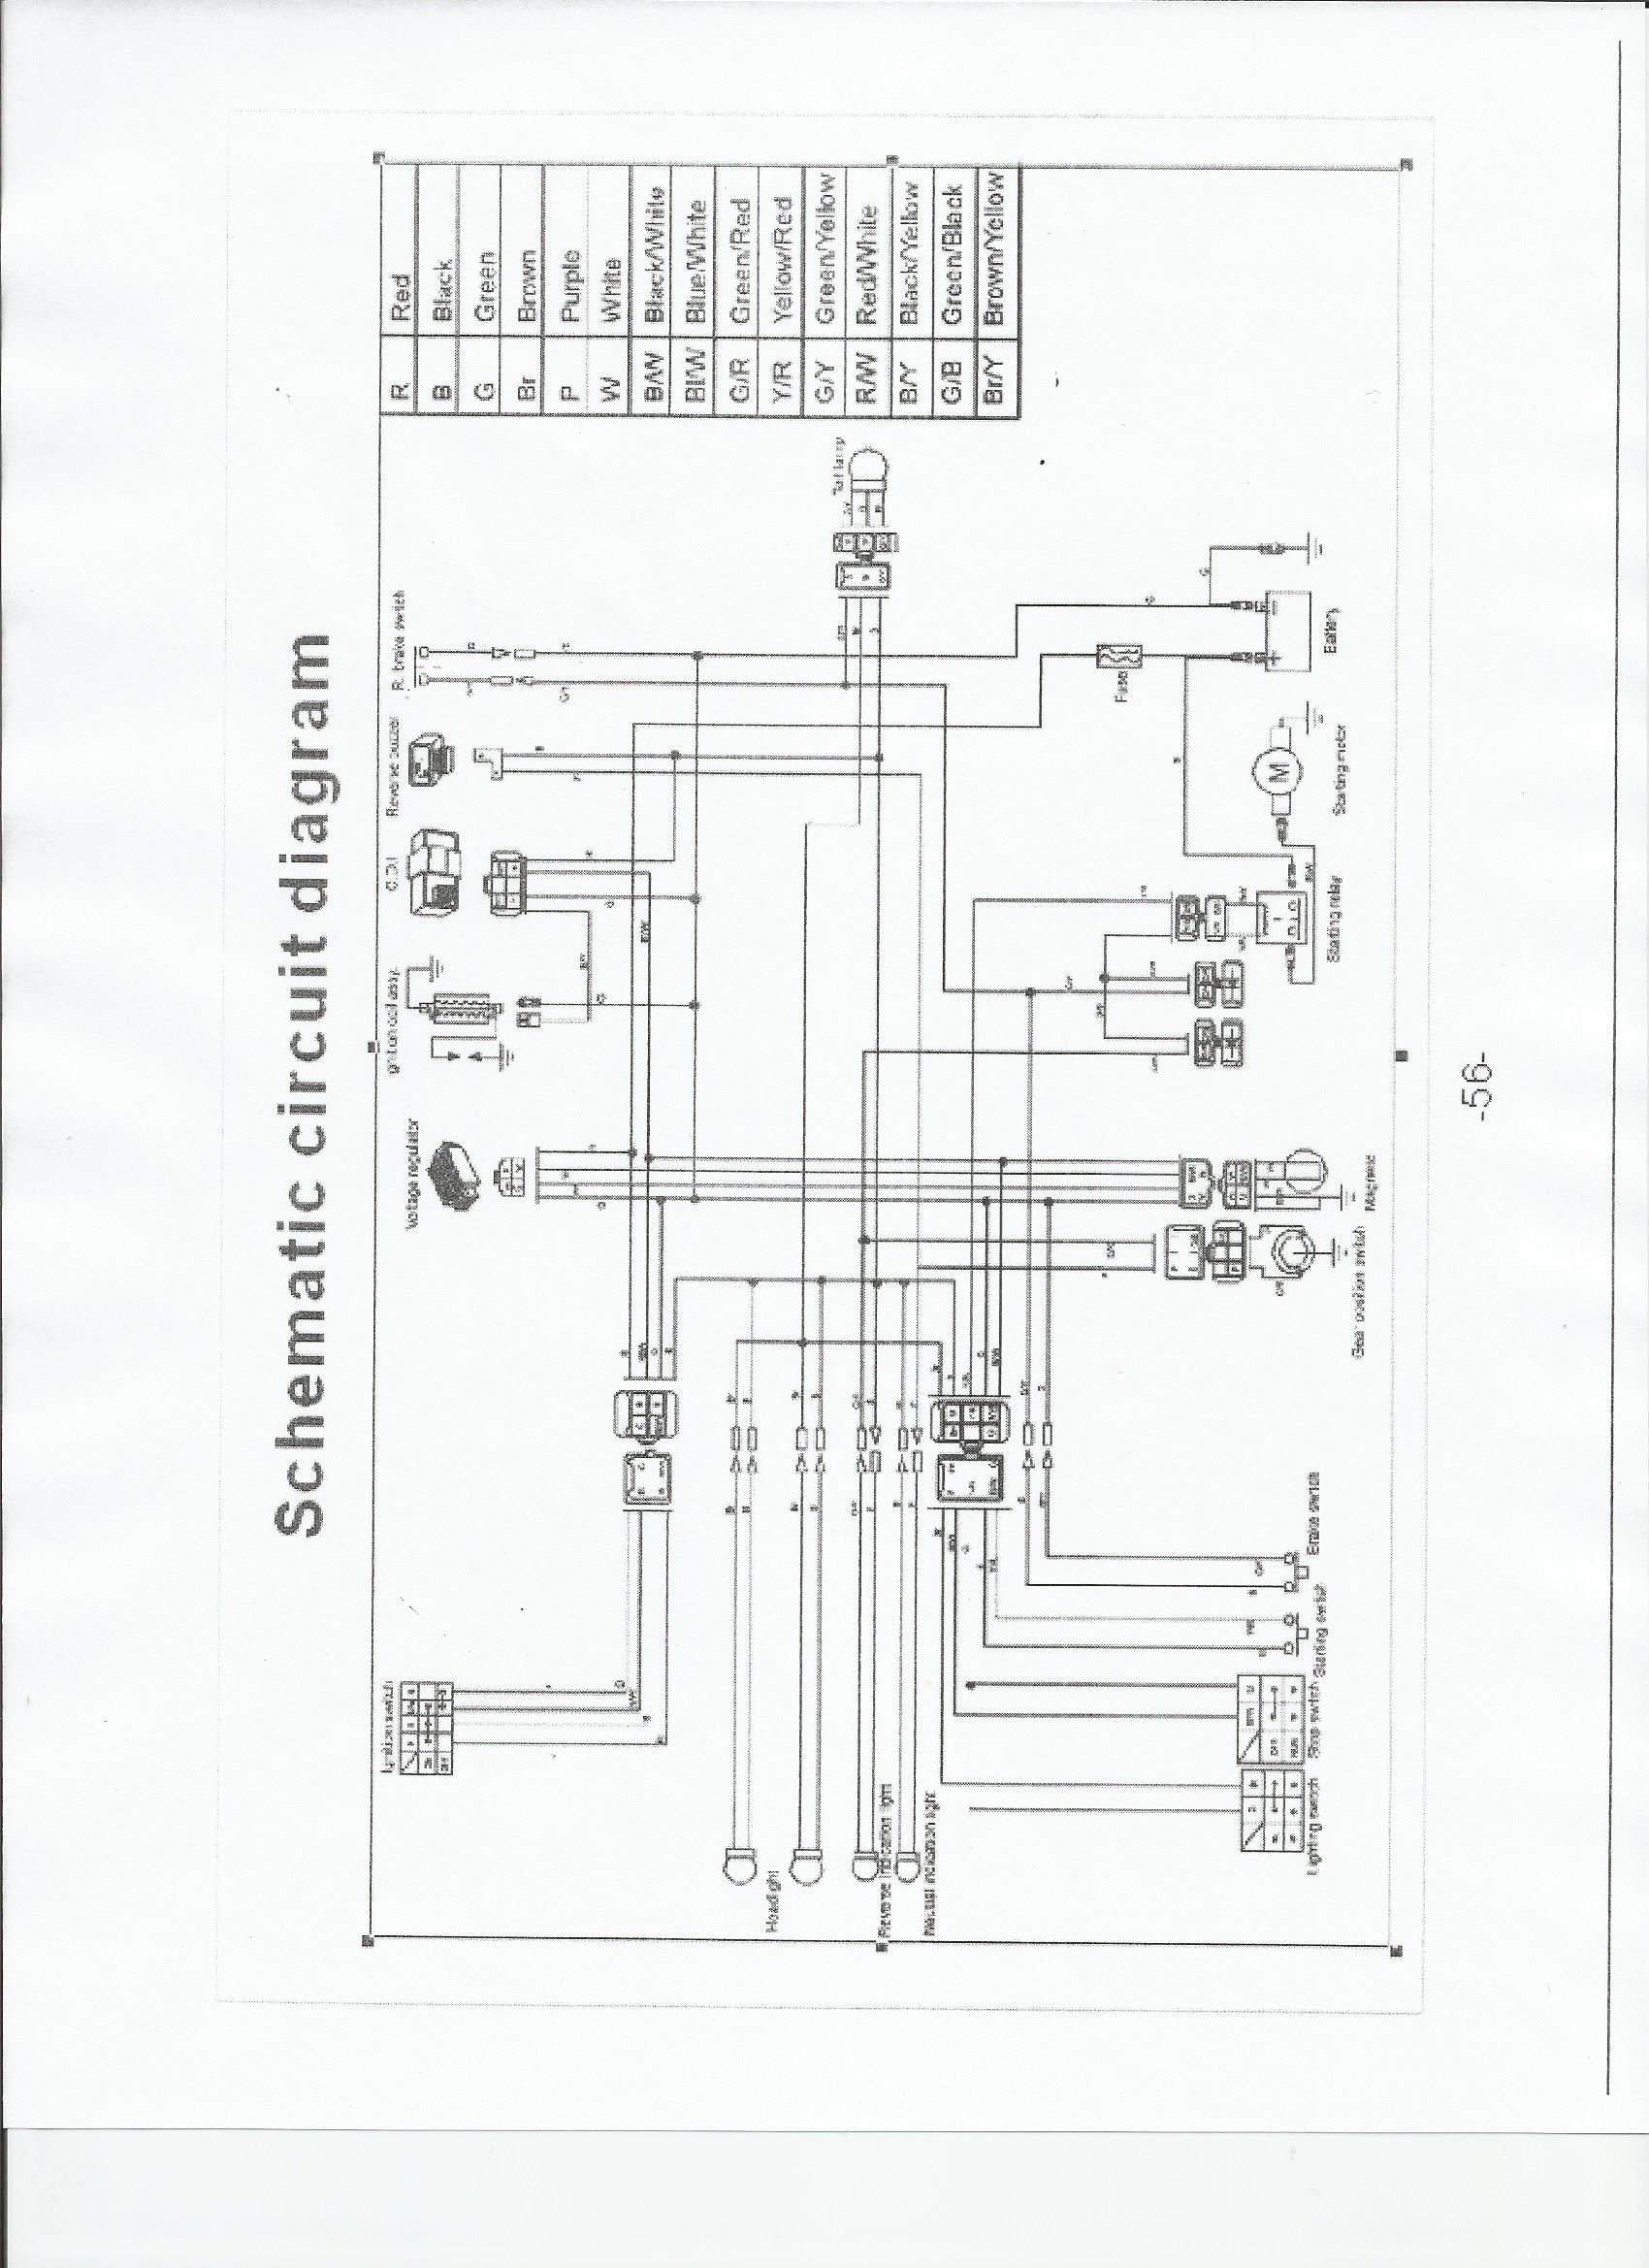 tao tao wiring schematic taotao mini and youth atv wiring schematic familygokarts support chinese 110cc atv wiring diagram at webbmarketing.co